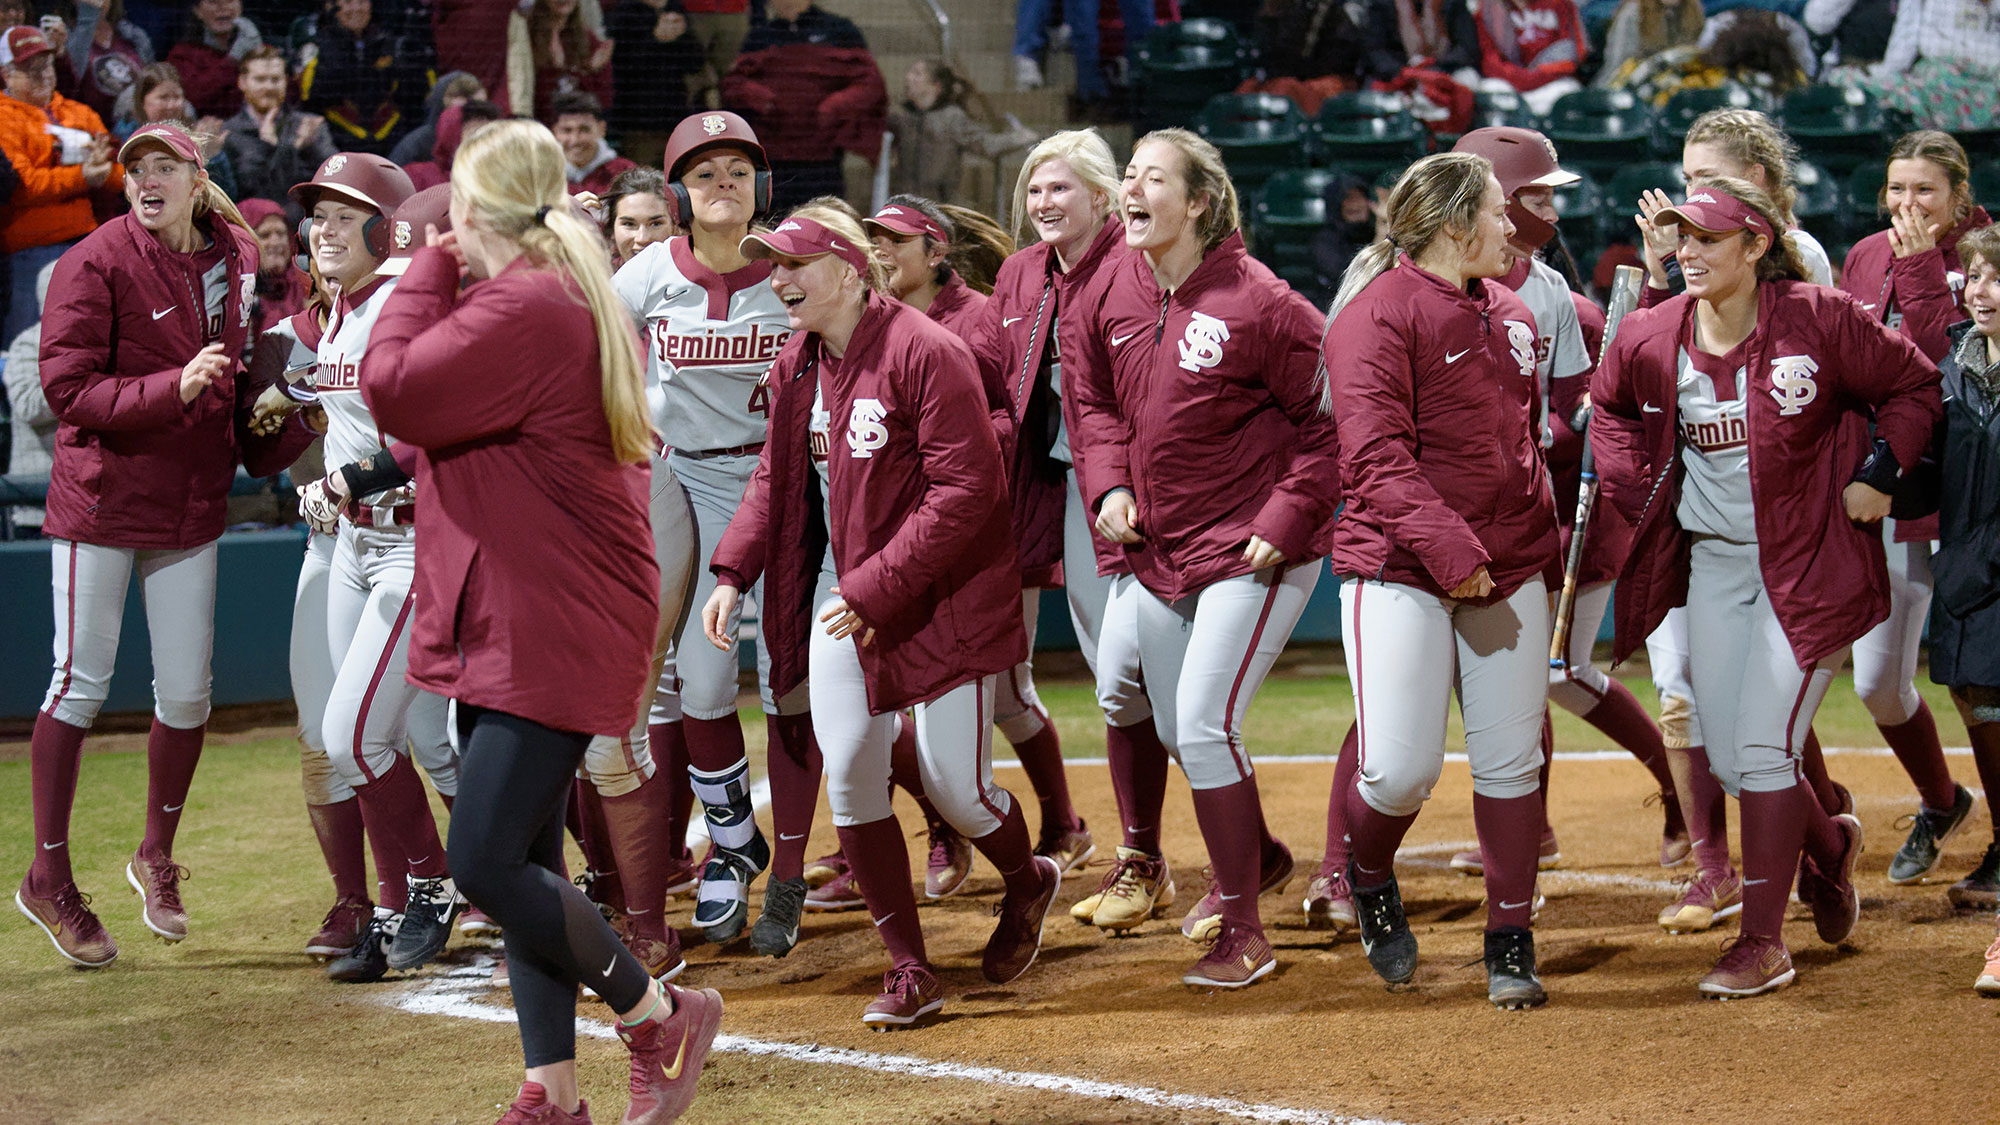 Florida State softball vs Southern Miss Has Been Postponed due to weather